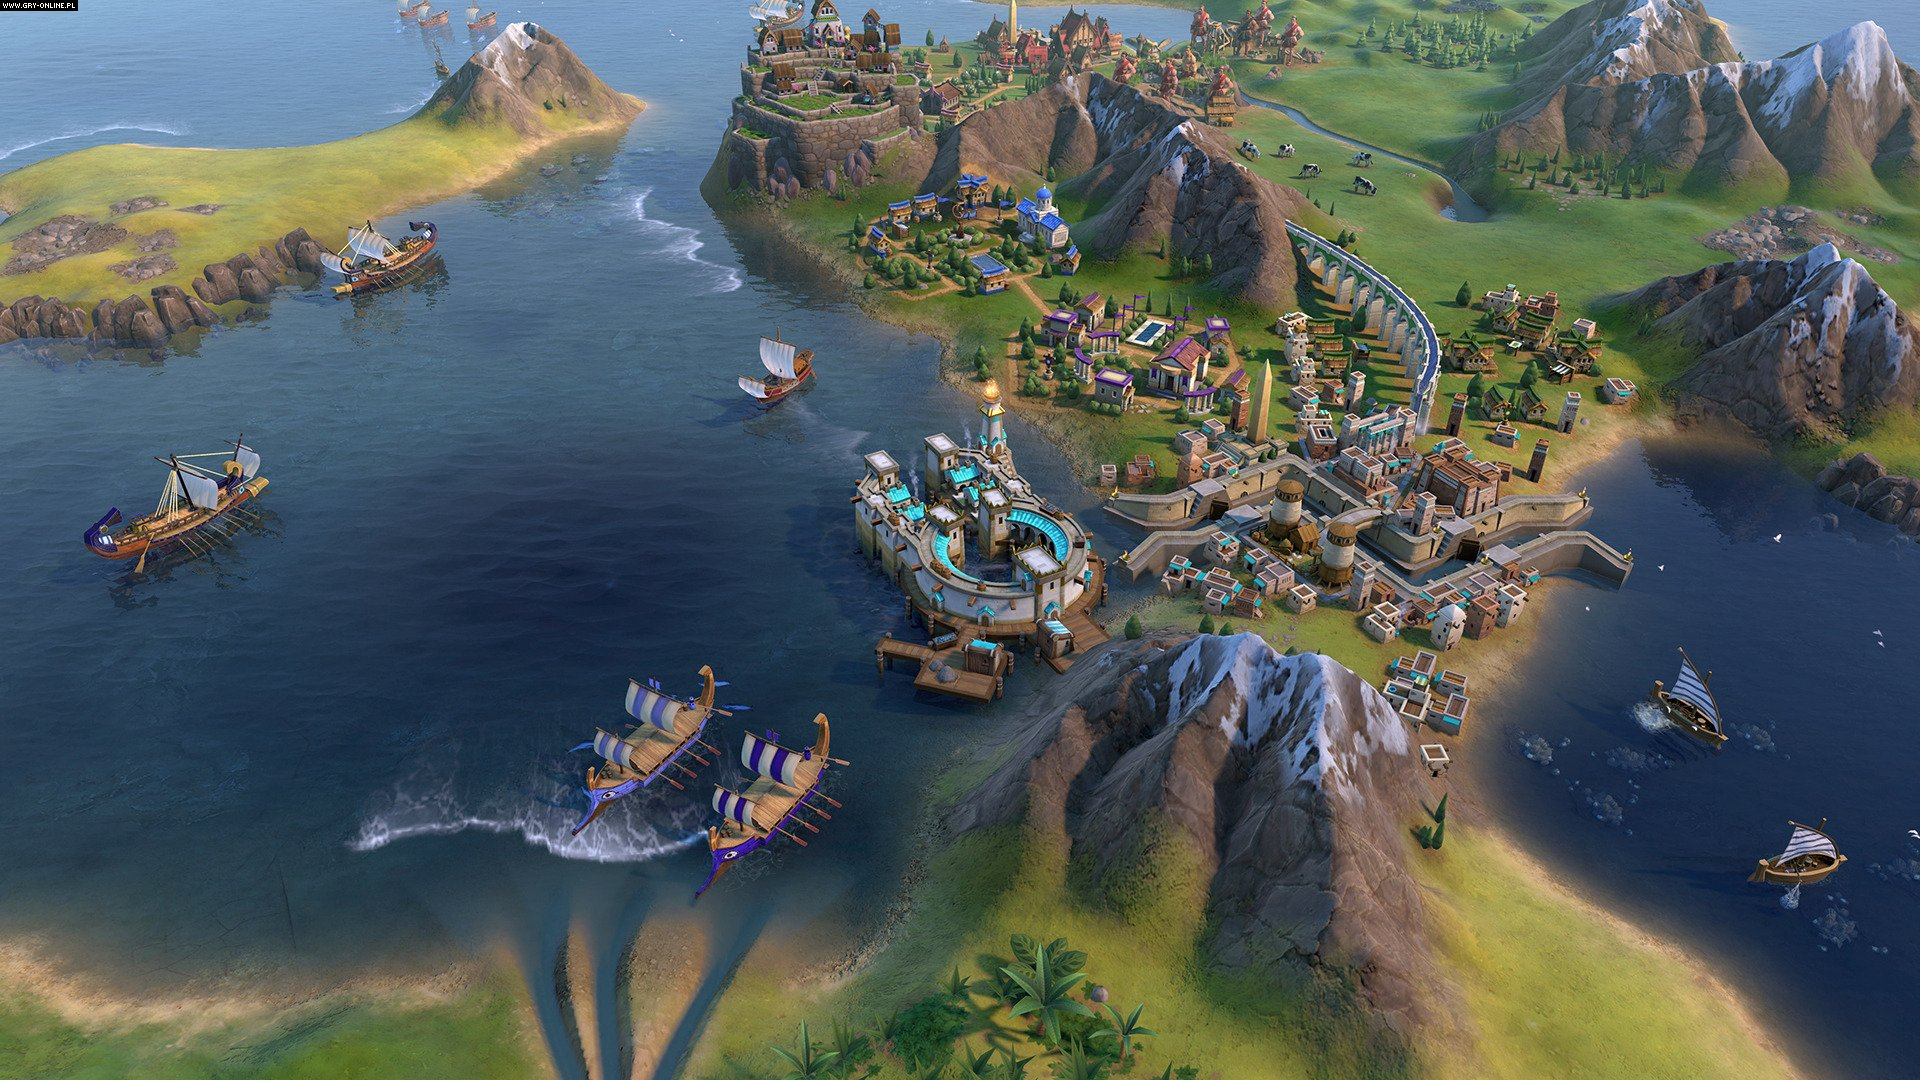 Sid Meier's Civilization VI: Gathering Storm PC Games Image 1/20, Firaxis Games, 2K Games